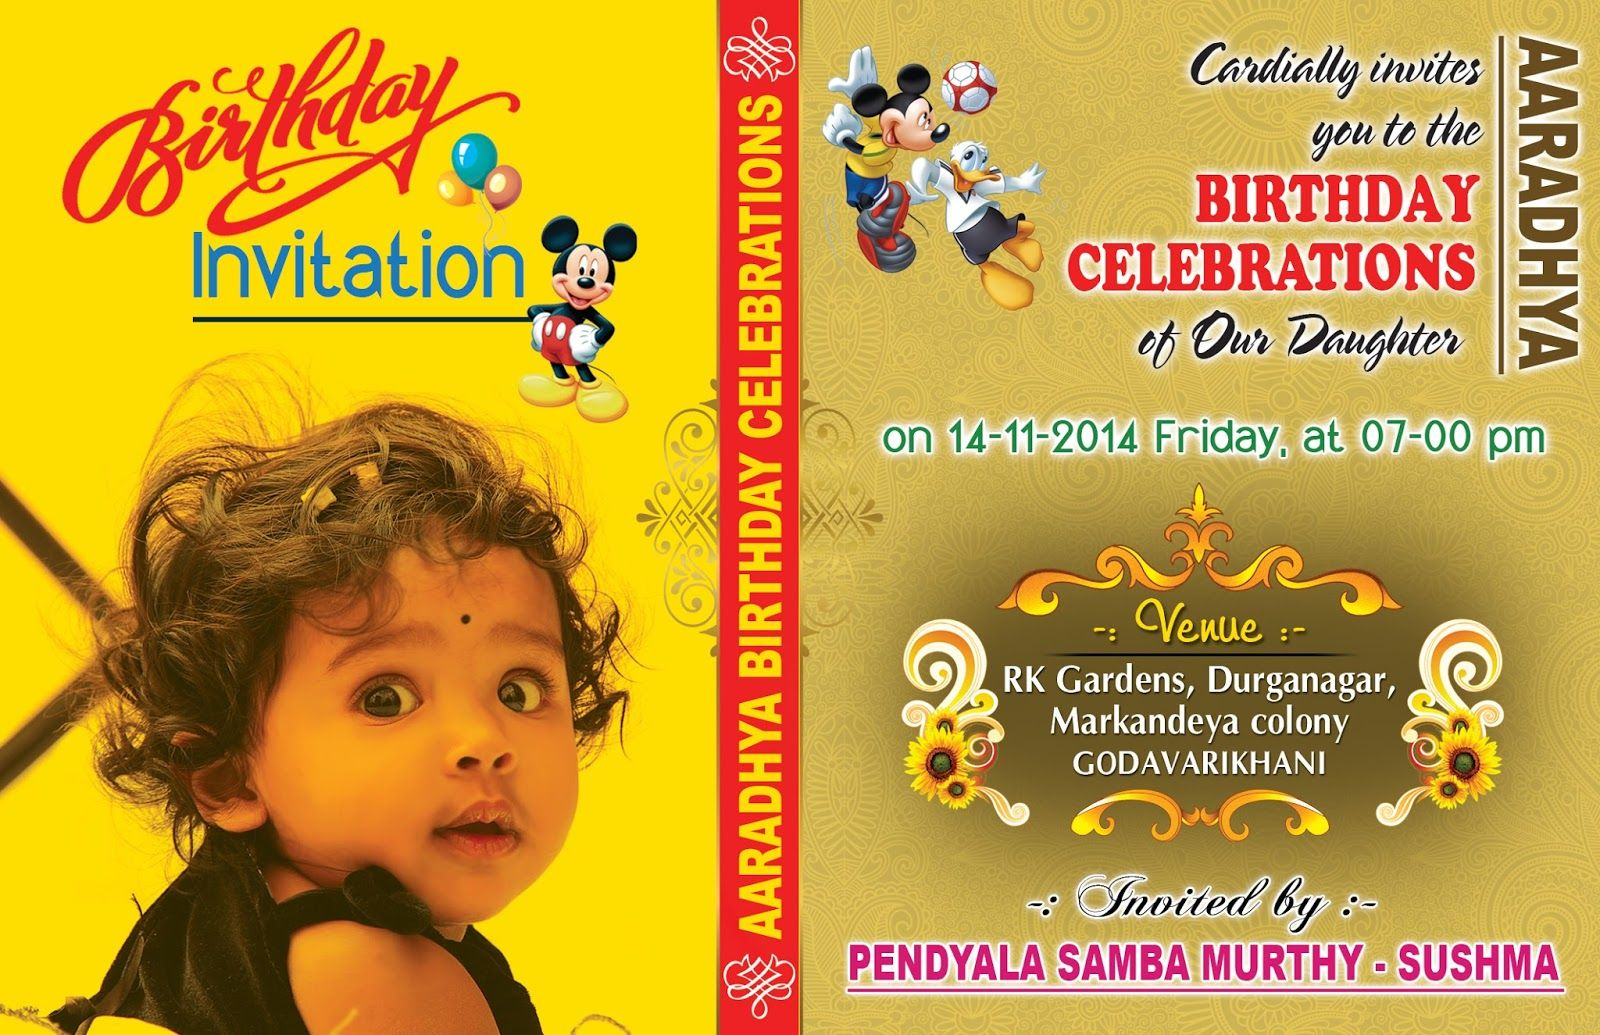 Birthday Party Invitation Card Design Image Inspiration of Cake – Birthday Invitation Design for 1st Birthday